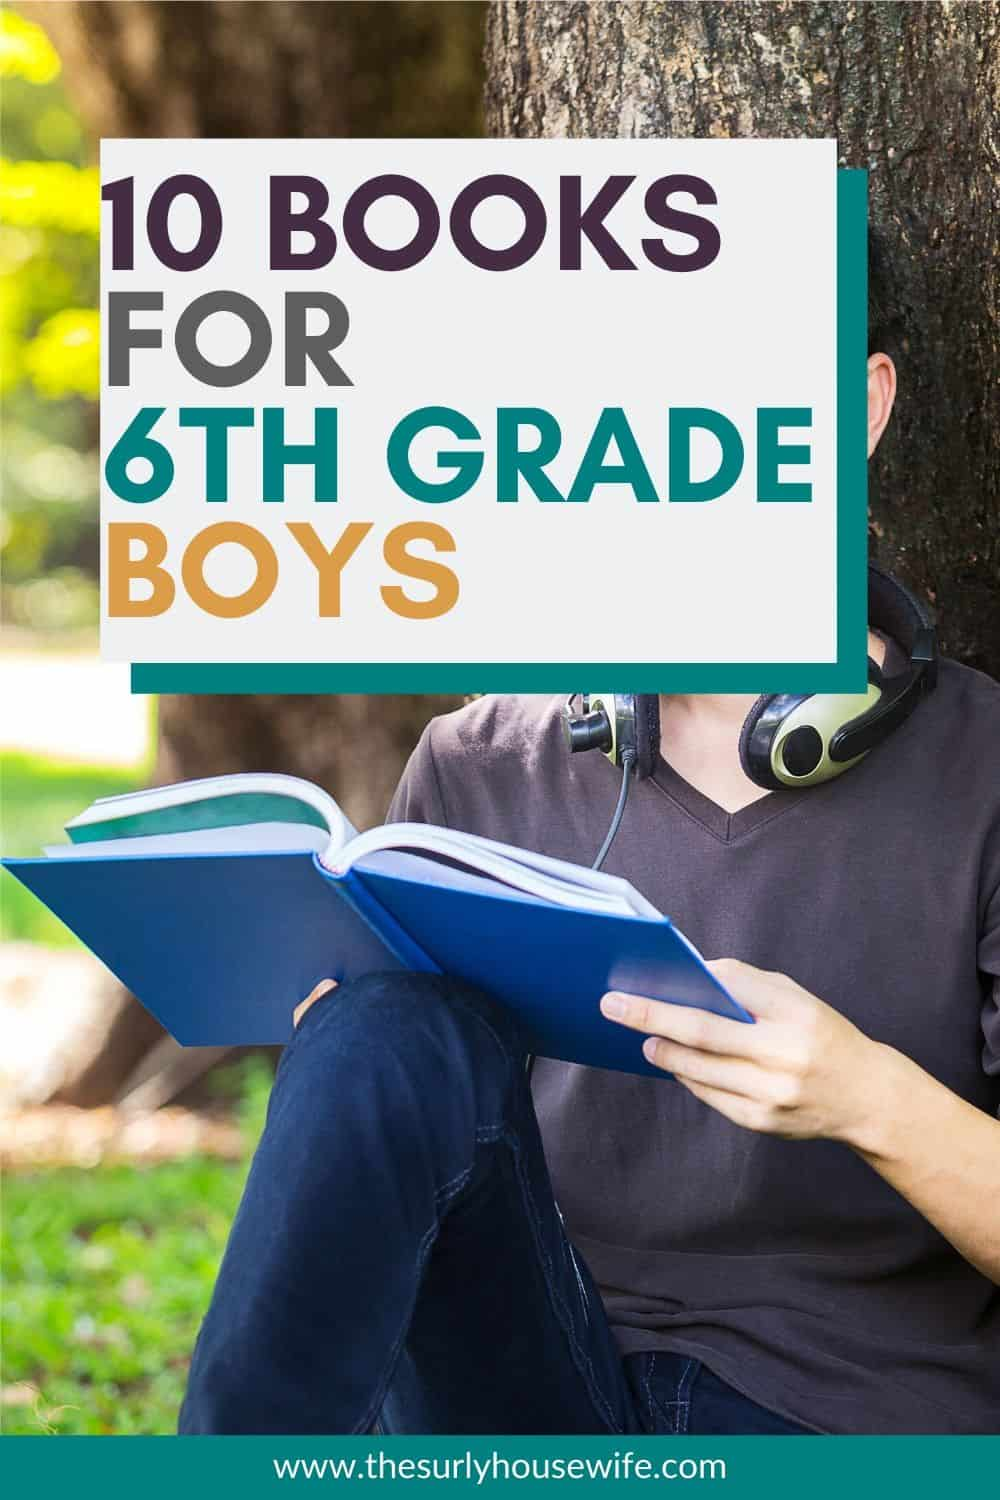 Looking to find a book for 6th grade boy? Check out this post for 10 awesome and varied books your sixth grader will love! The ultimate list of book recommendations for boys. It includes chapter books, fantasy, action and adventure, realistic fiction, historical fiction, and survival books. They are perfect for reading aloud, independent reading, or a summer reading list! Don't miss this list which contains some of the best books for 12 year old boys.